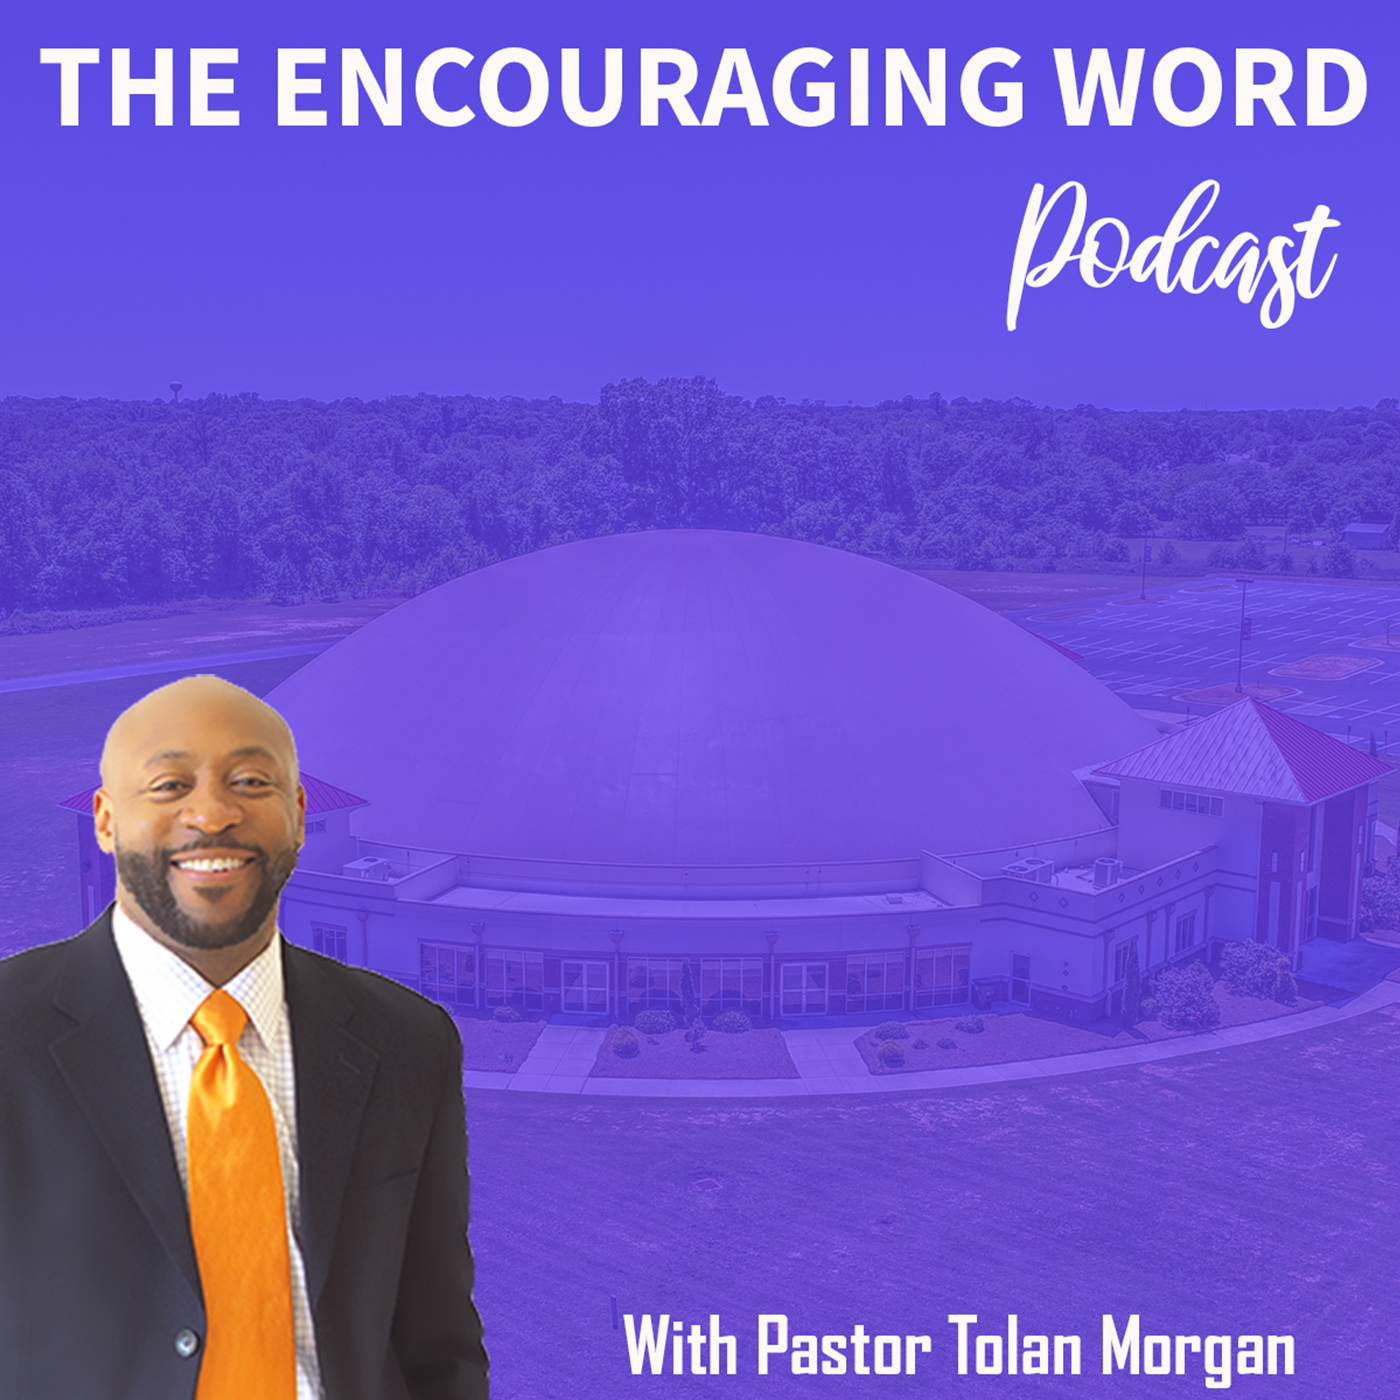 The Encouraging Word Podcast on Apple Podcasts